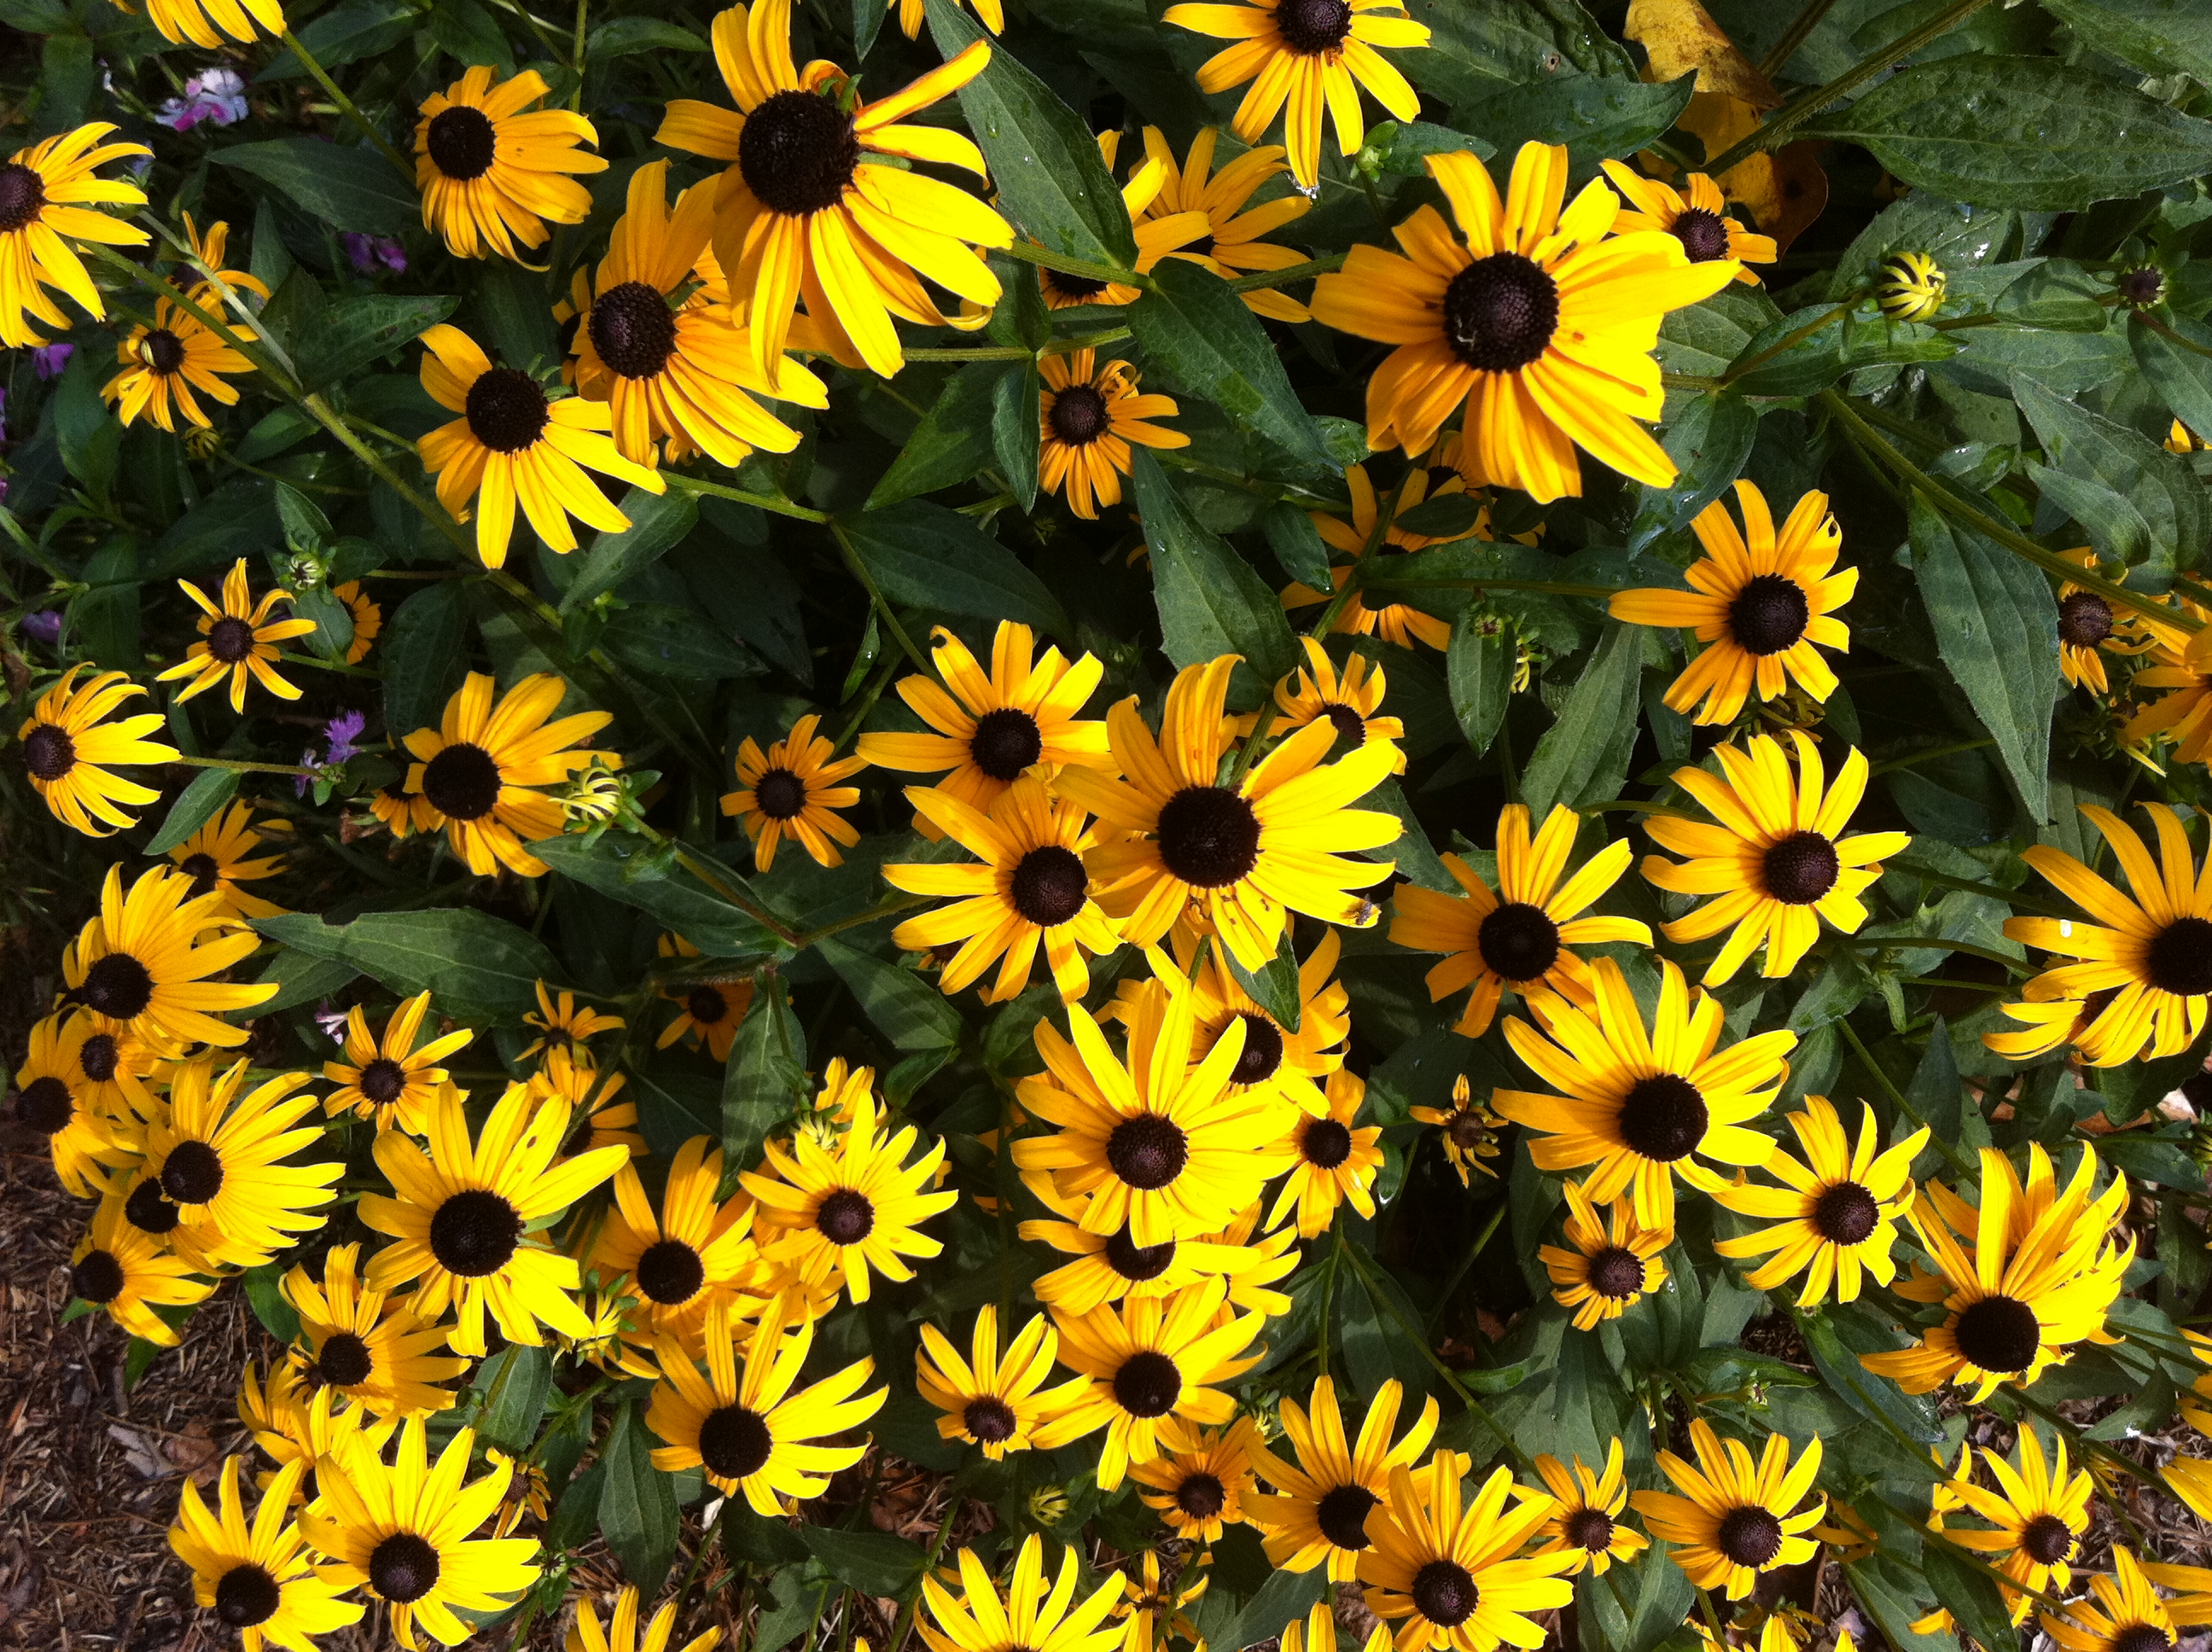 Black Eyed Susans On My Walk